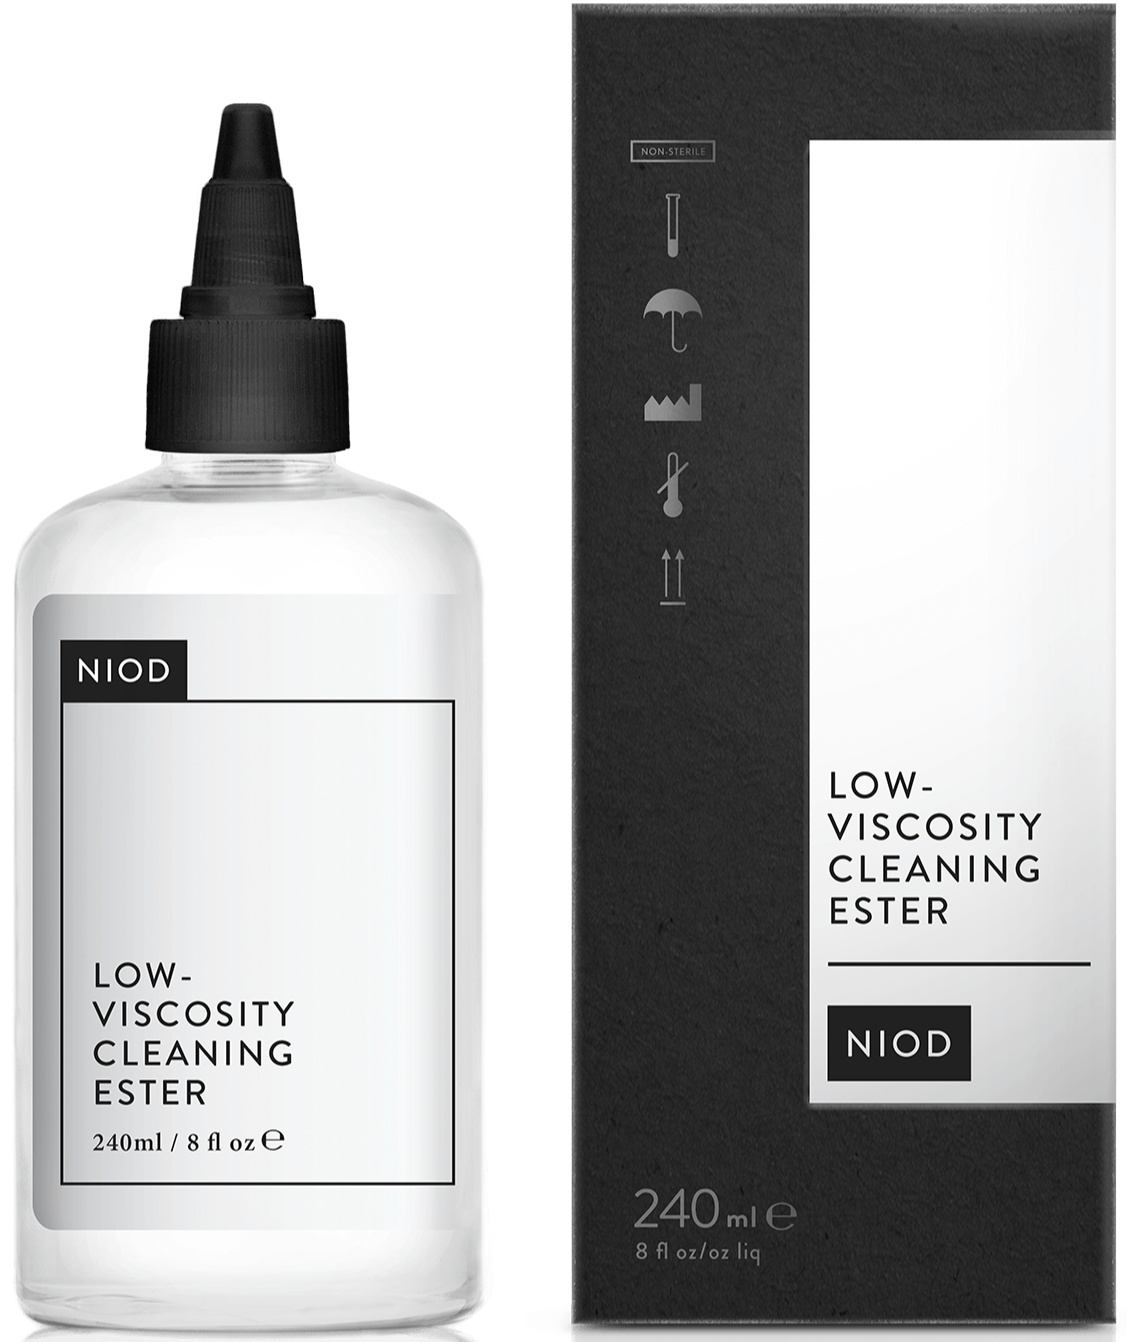 NOID Low-Viscosity Cleaning Ester